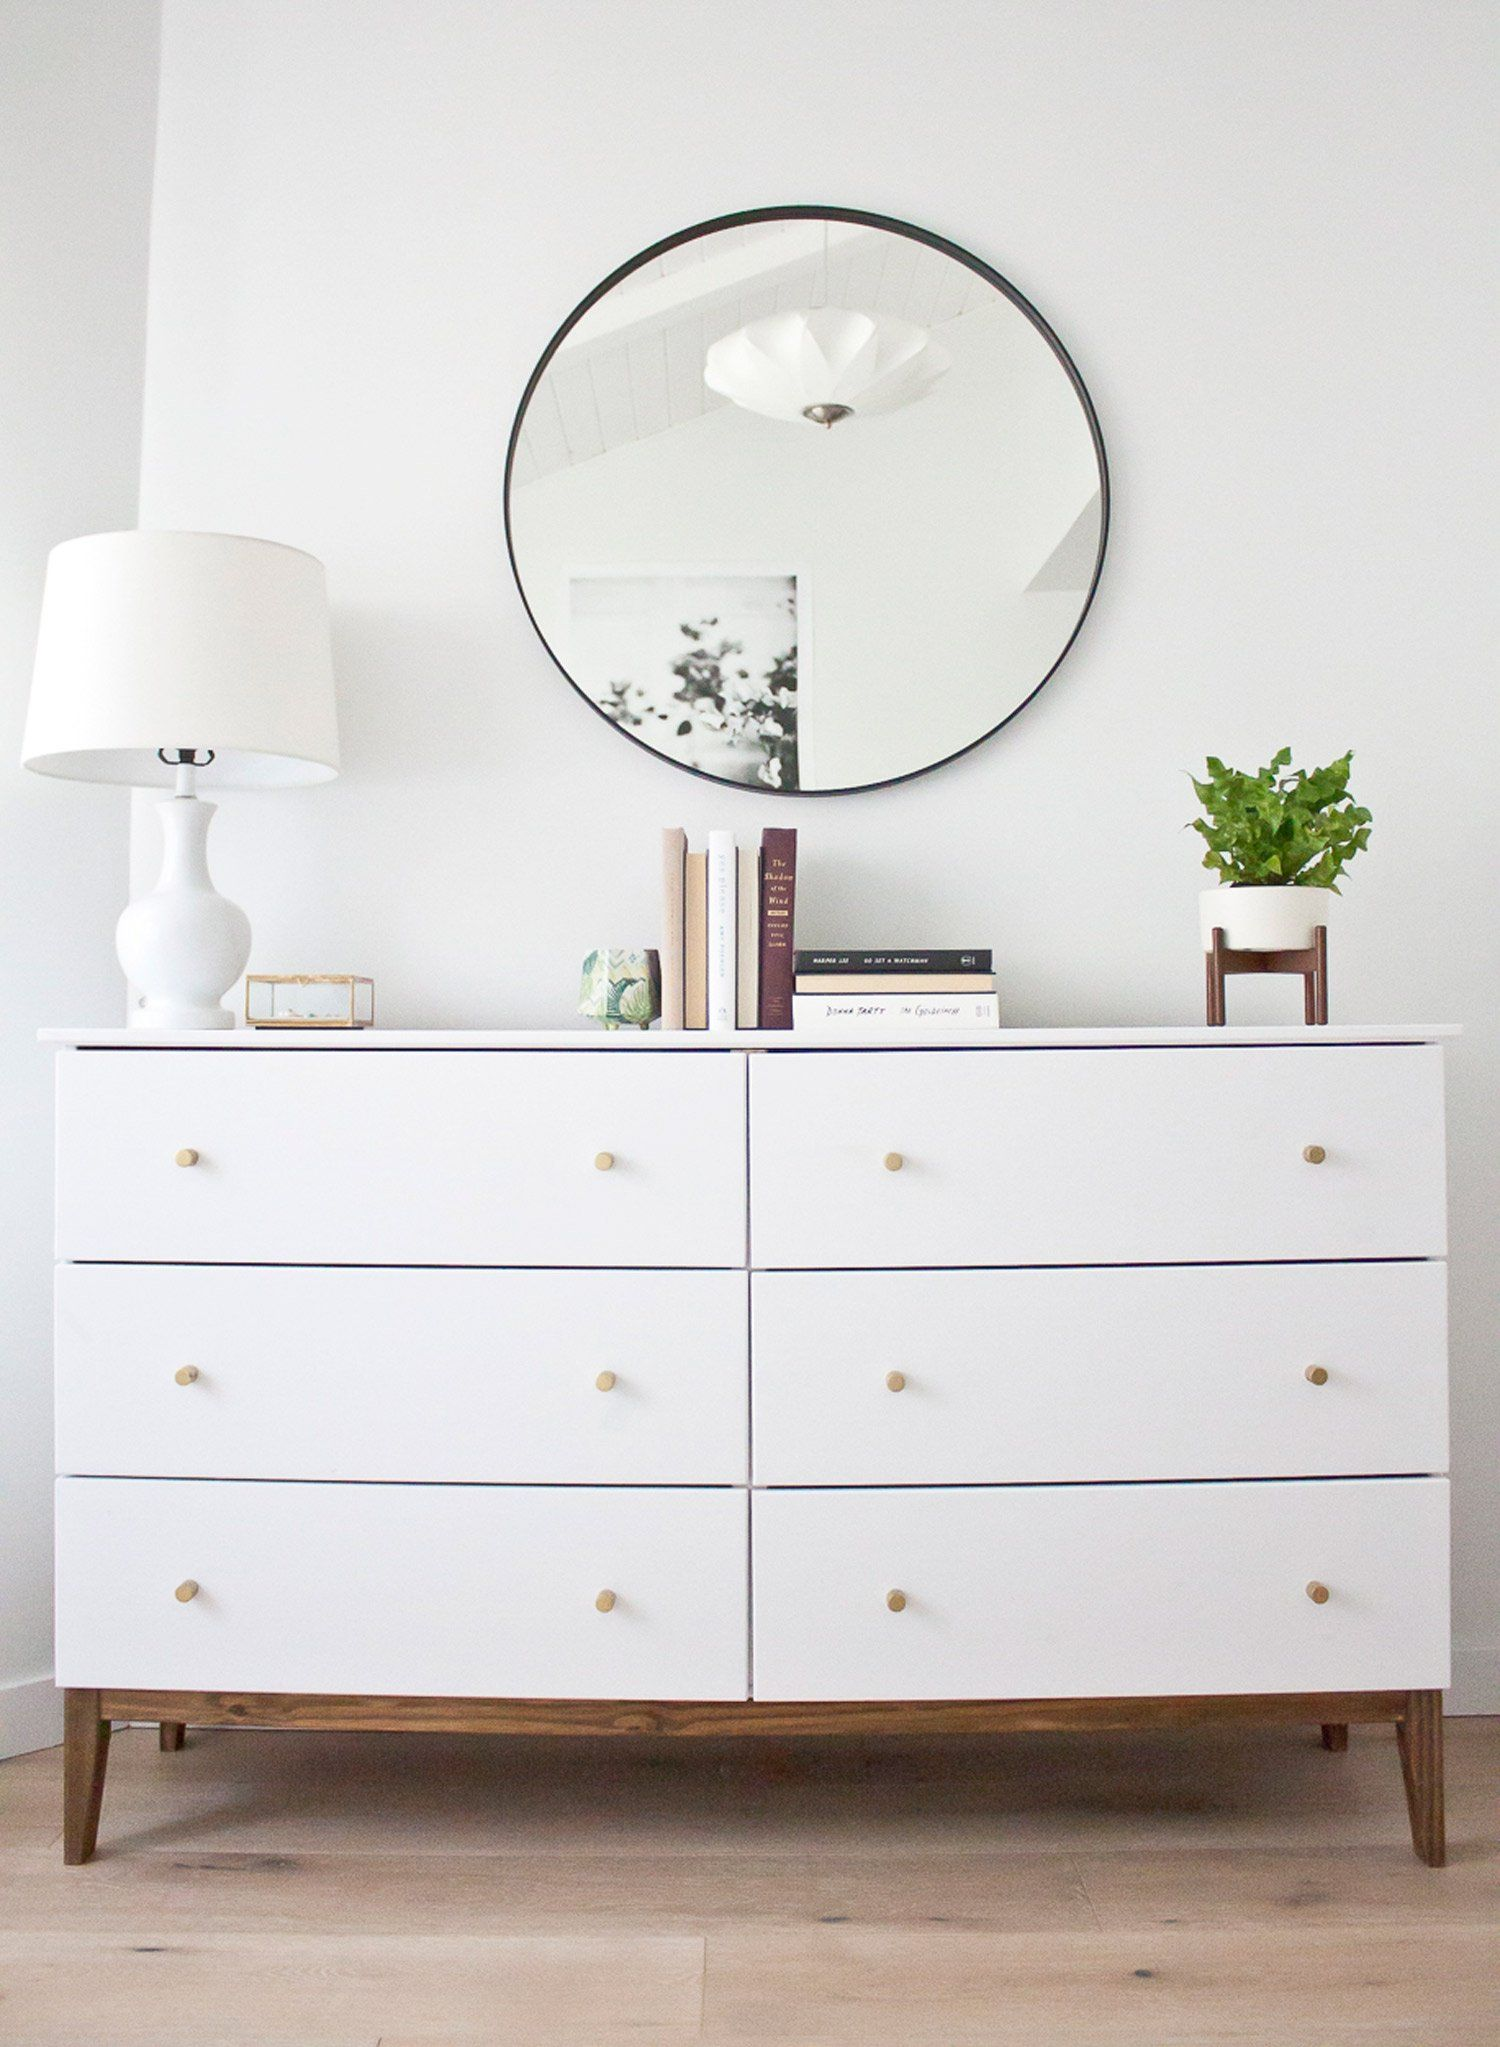 Moderne Kommode How To Make An Ikea Dresser Look Like A Midcentury Splurge 1203